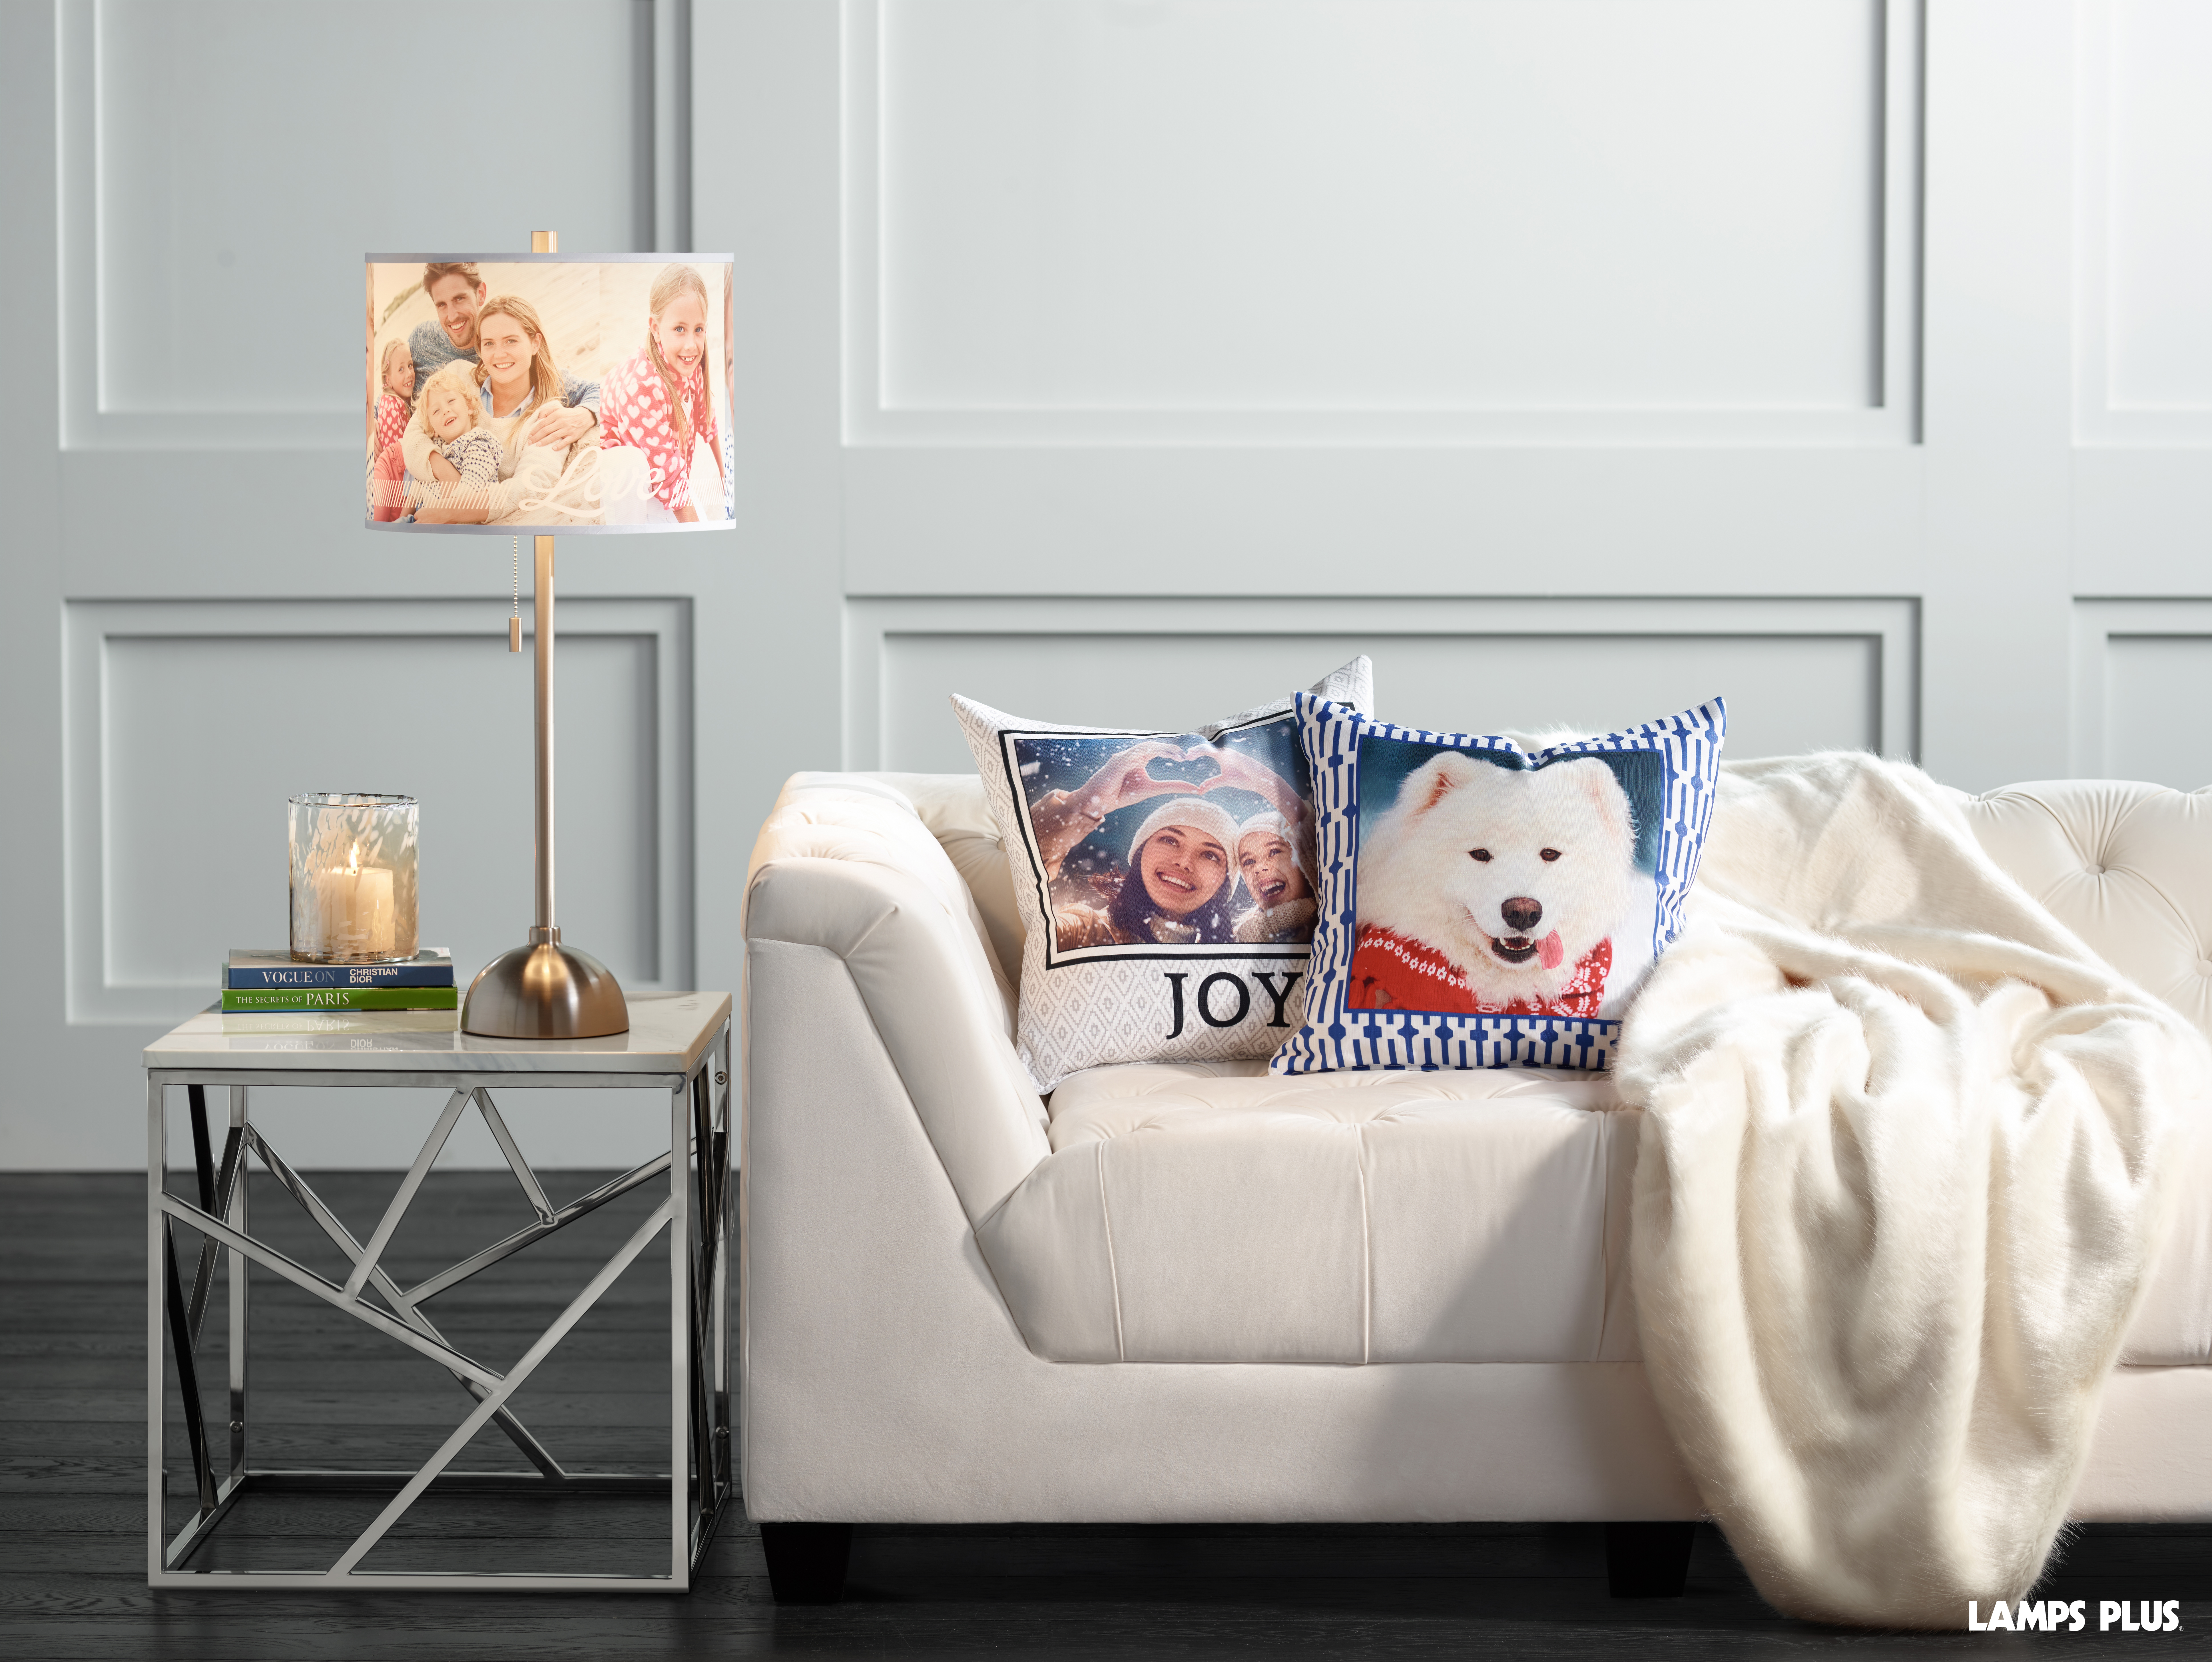 New Custom Photo Lighting And Pillows From Lamps Plus Offer Infinite  Interior Design Options For Personal Pictures, Messages And Self Made  Designs ...